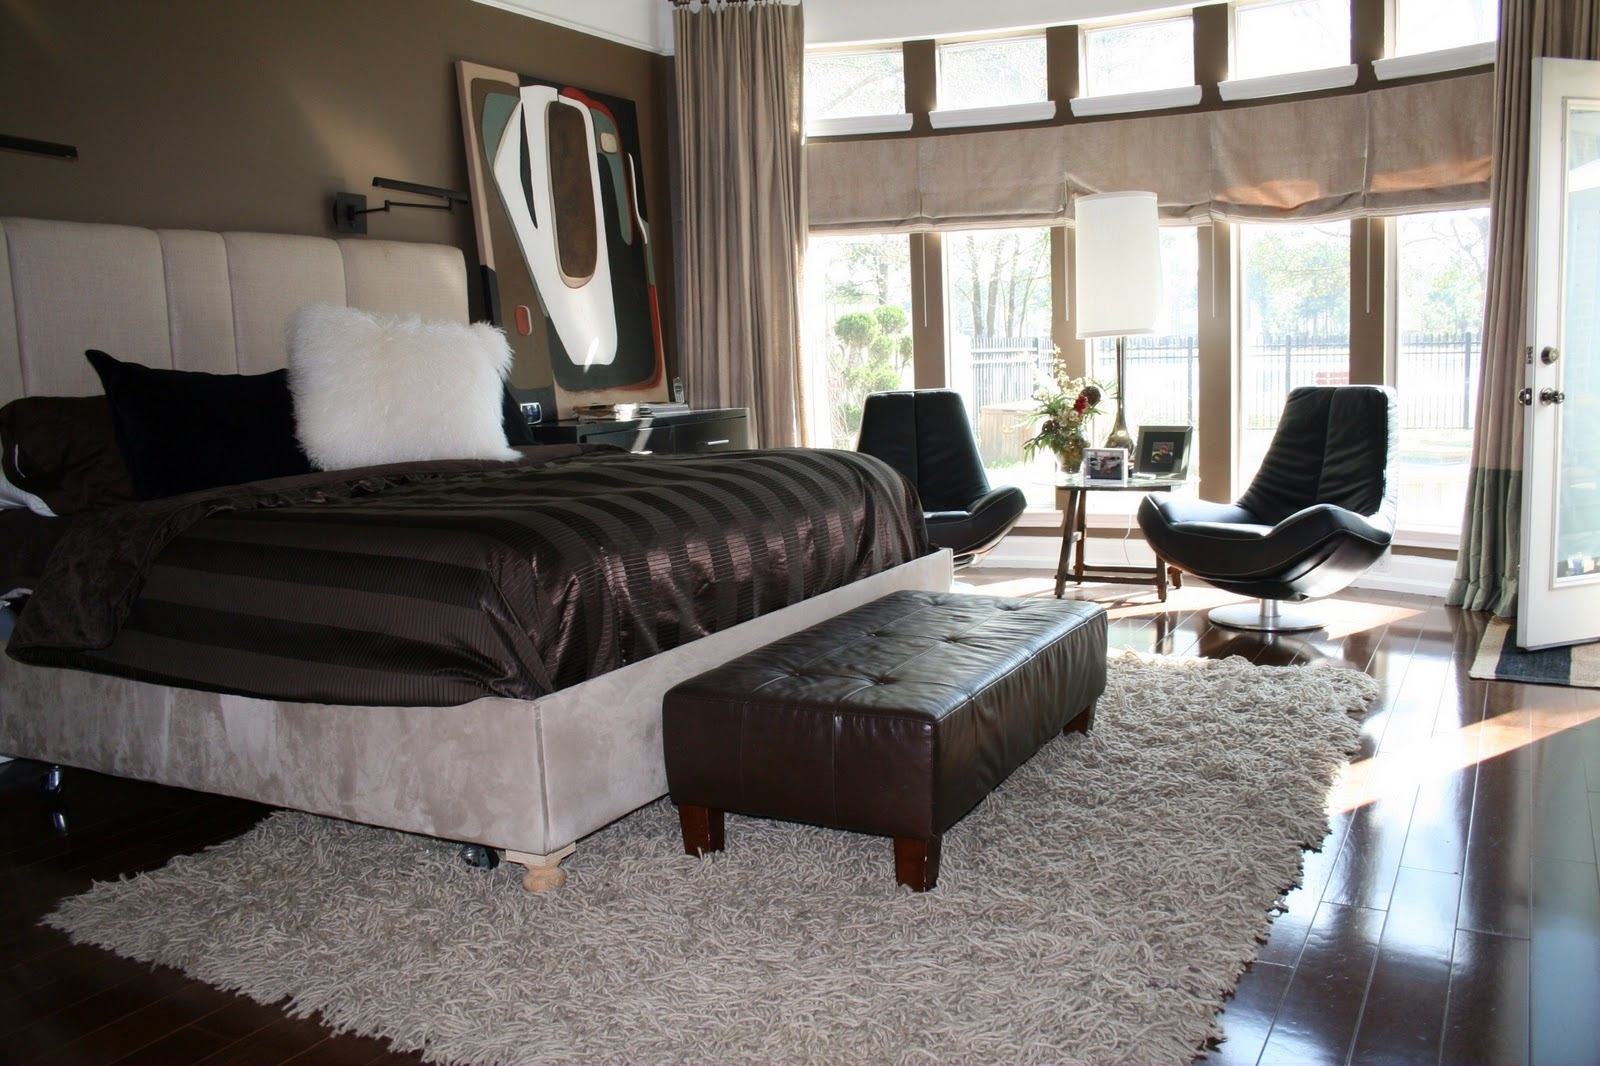 Dwell In Style: Found The Shag Rug You Love, But Can't